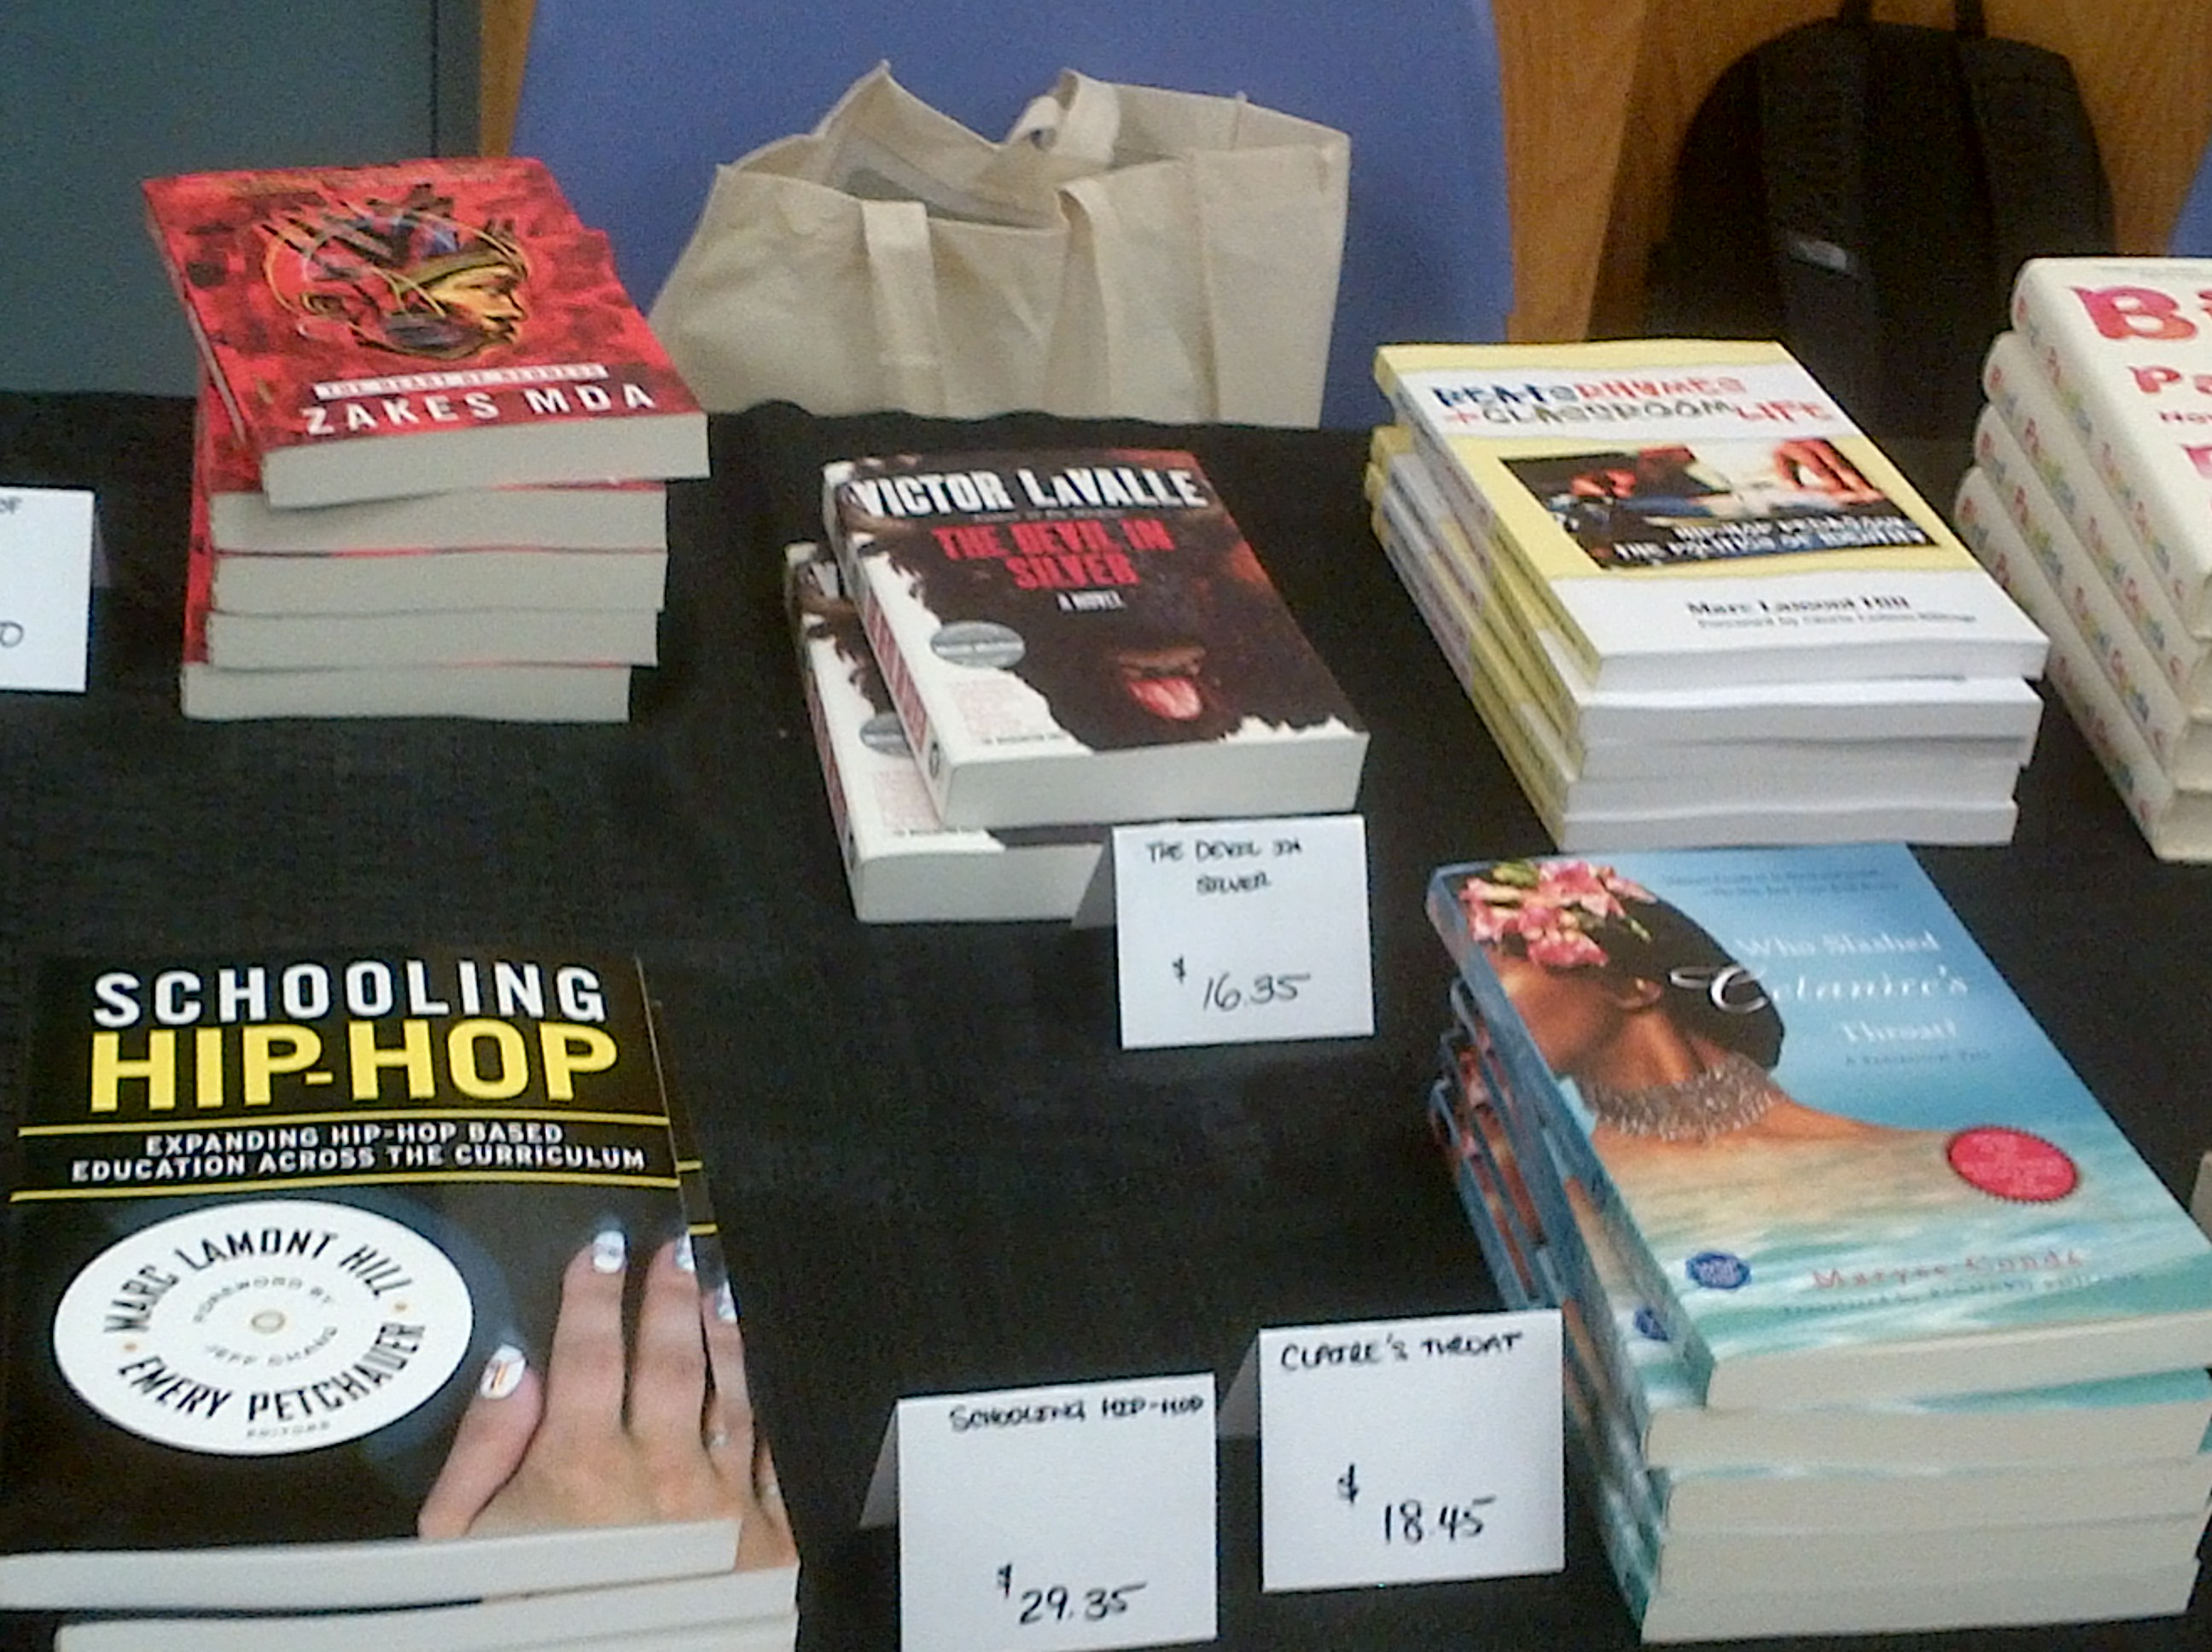 Books for sale at Brooklyn's National Black Writer's Conference 2014